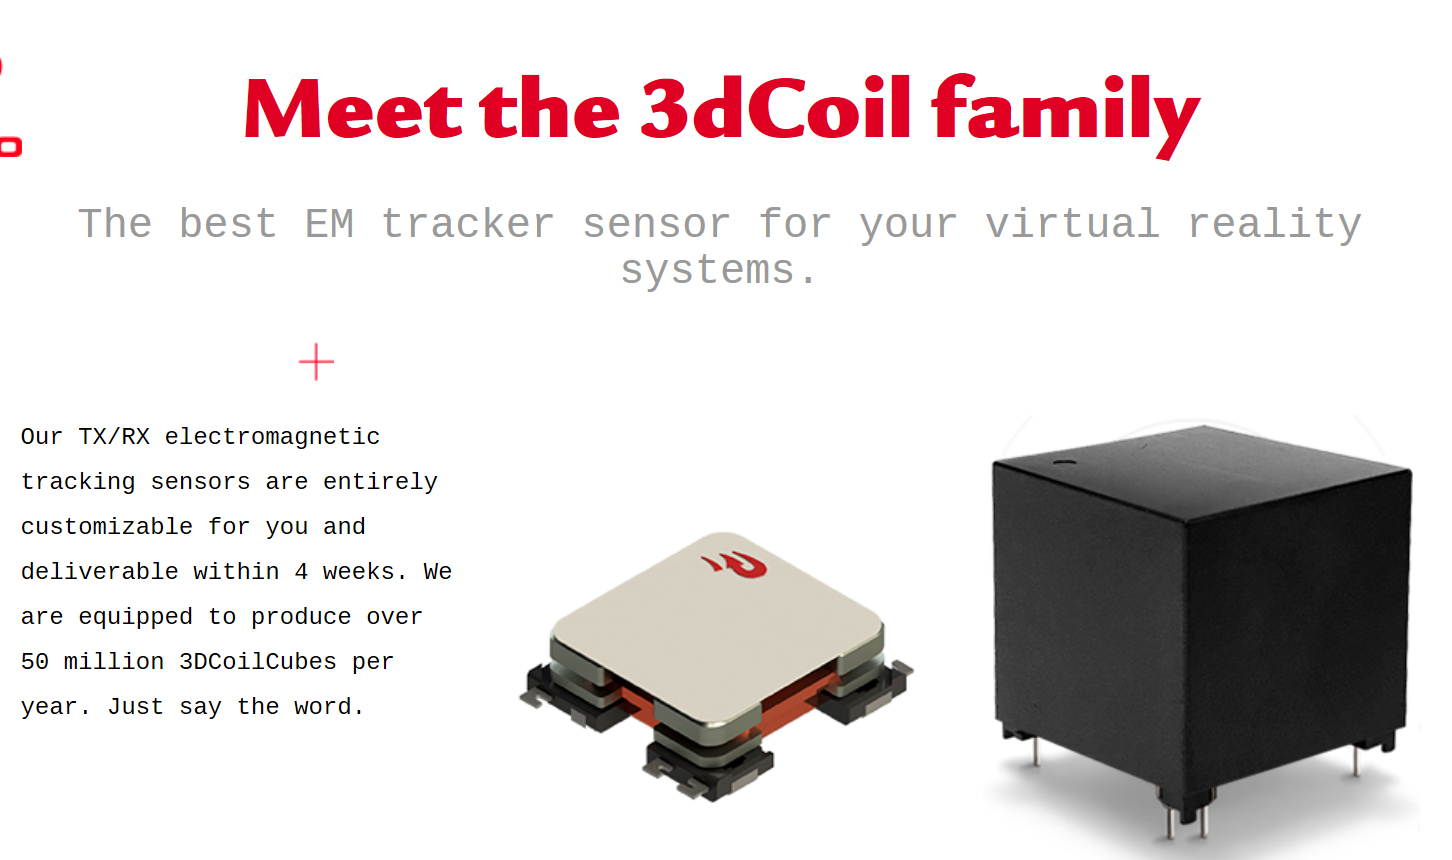 the 3dcoil family